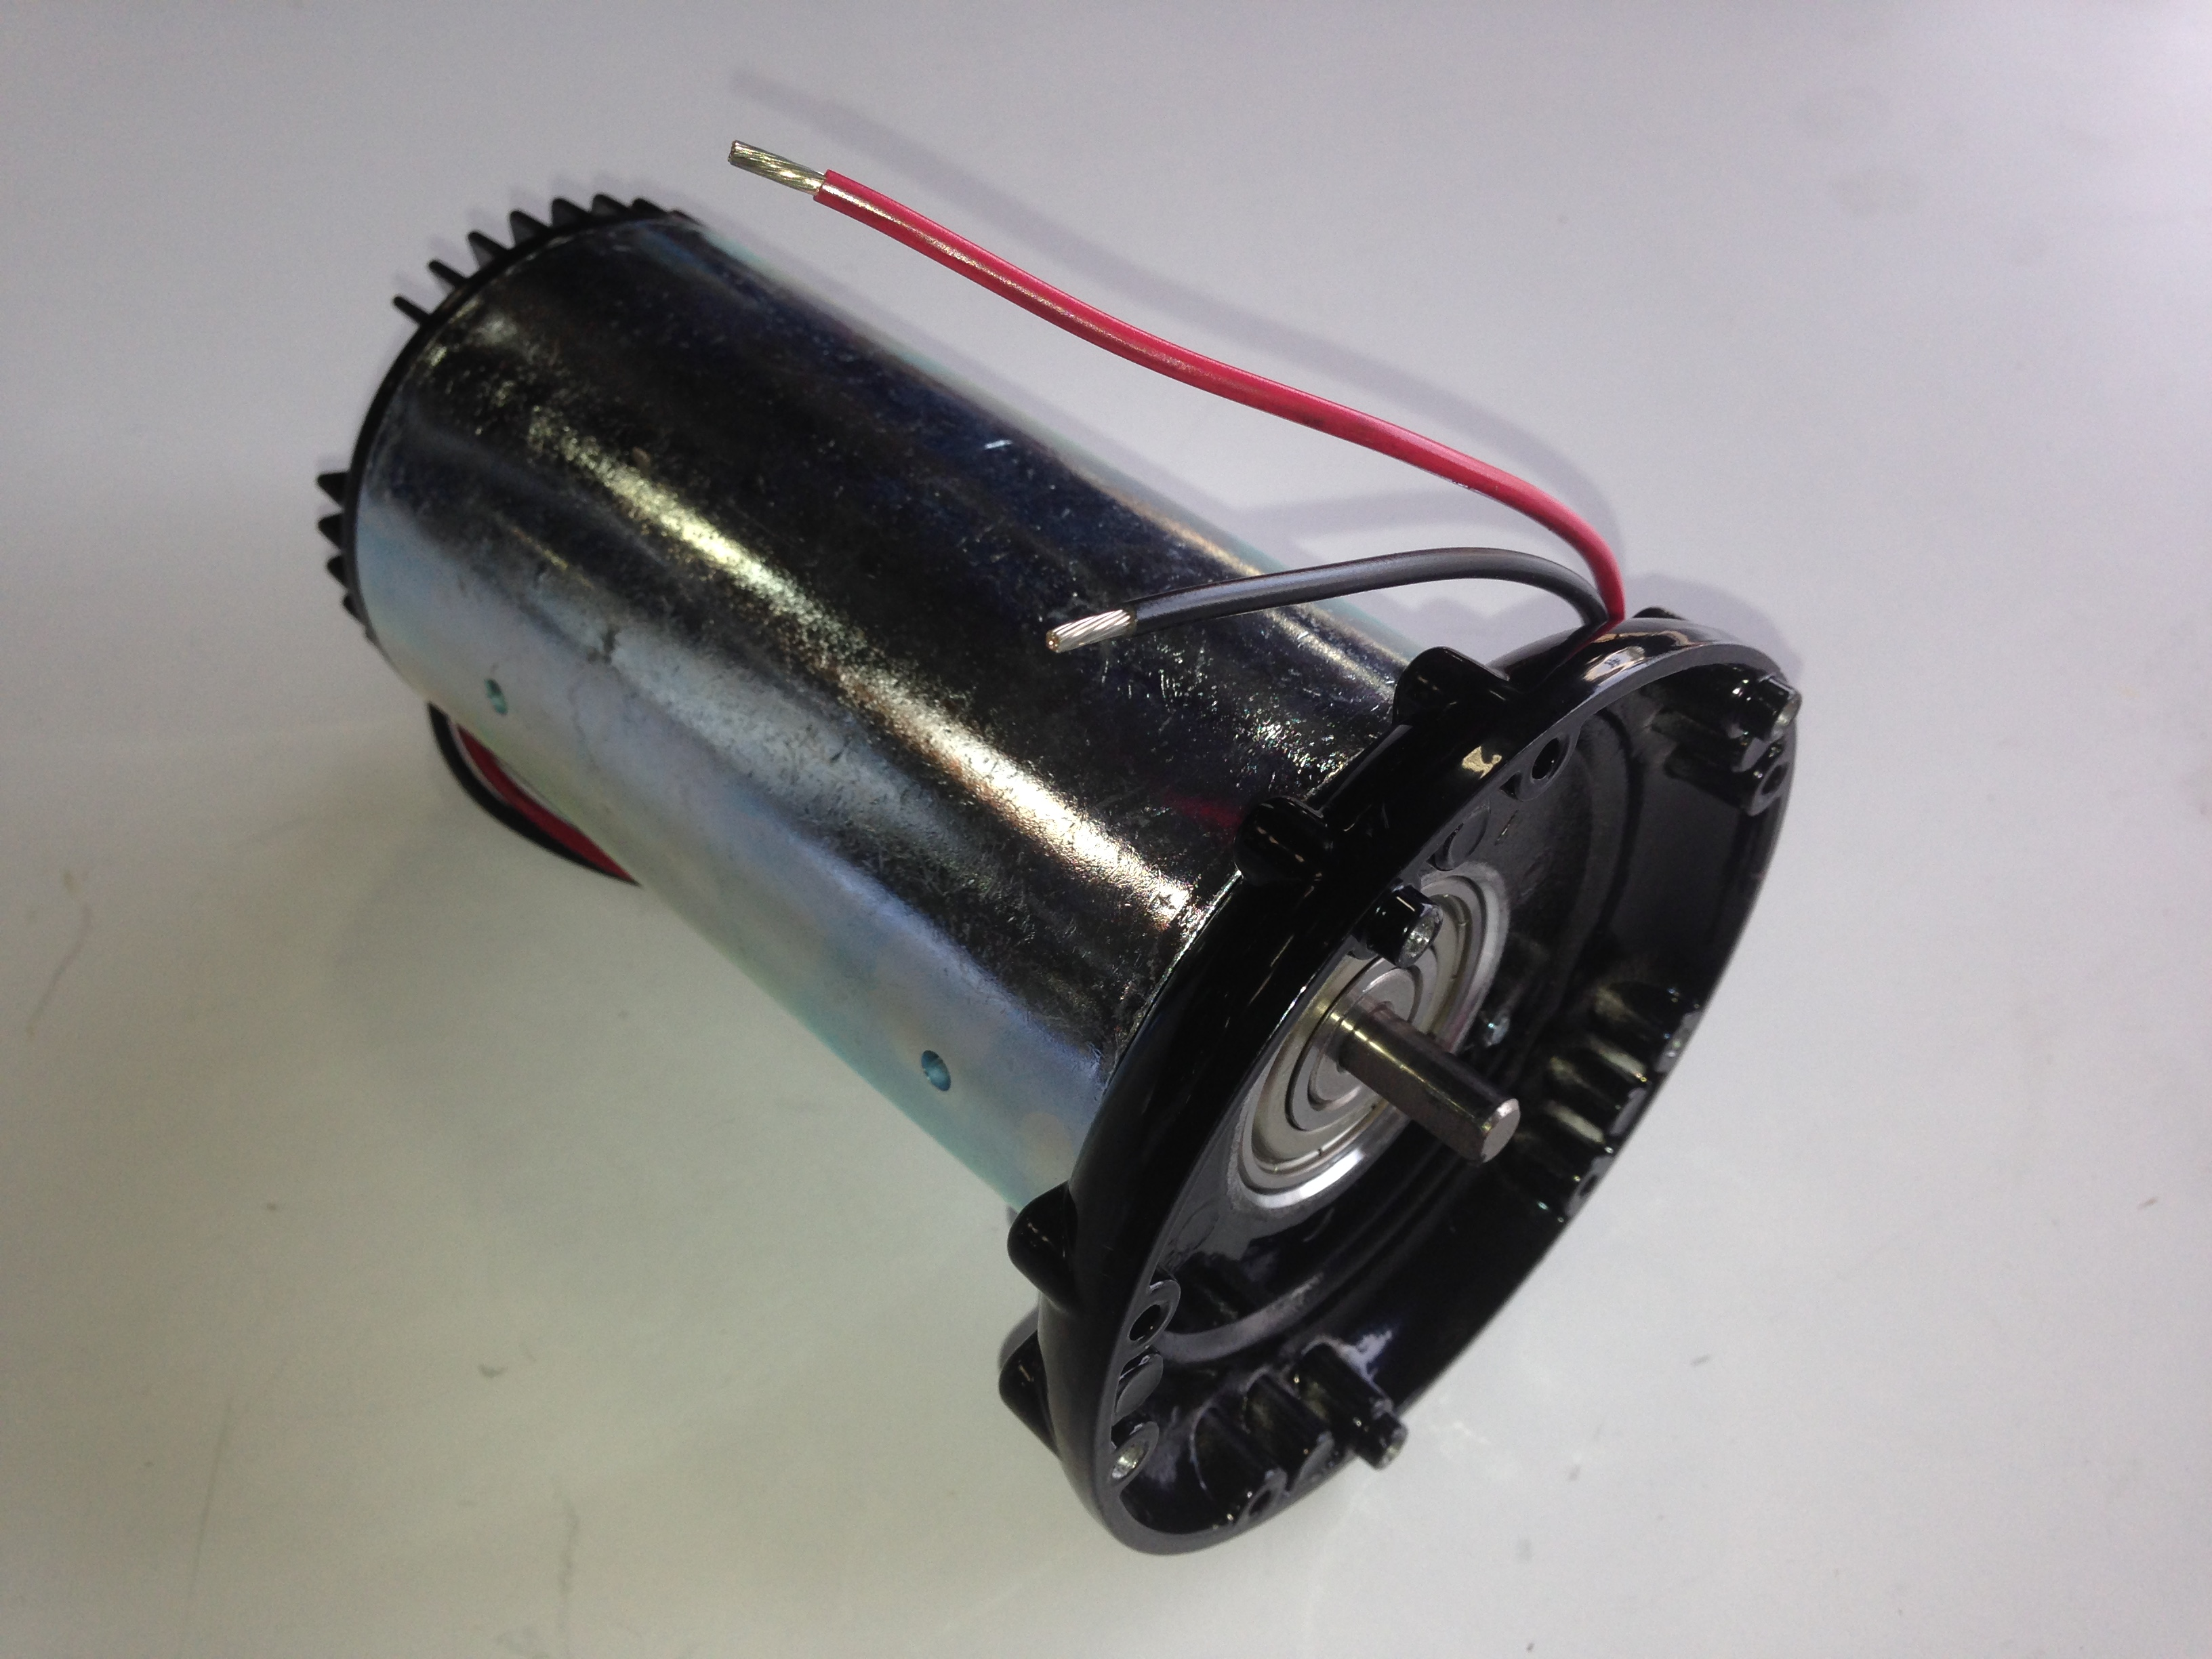 AQUATEC, SWP6000MTR, REPLACEMENT MOTOR FOR SWP-6000, SUBMERSIBLE PUMP